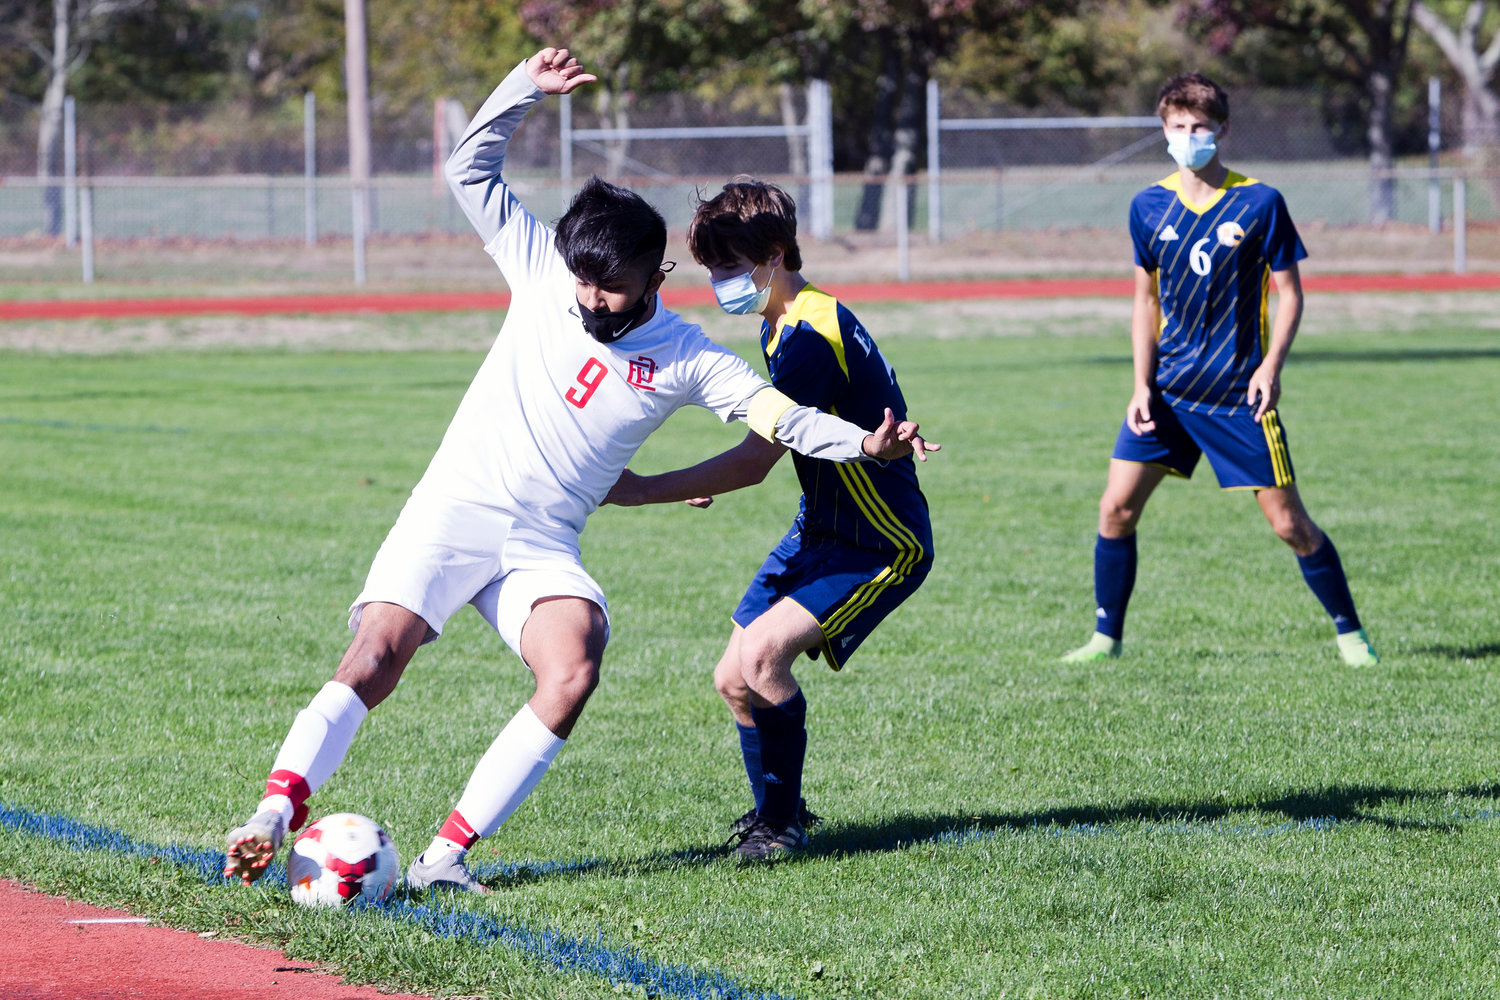 Gabe Ferriera attempts to keep the ball in play, under the pressure of a Barrington opponent.